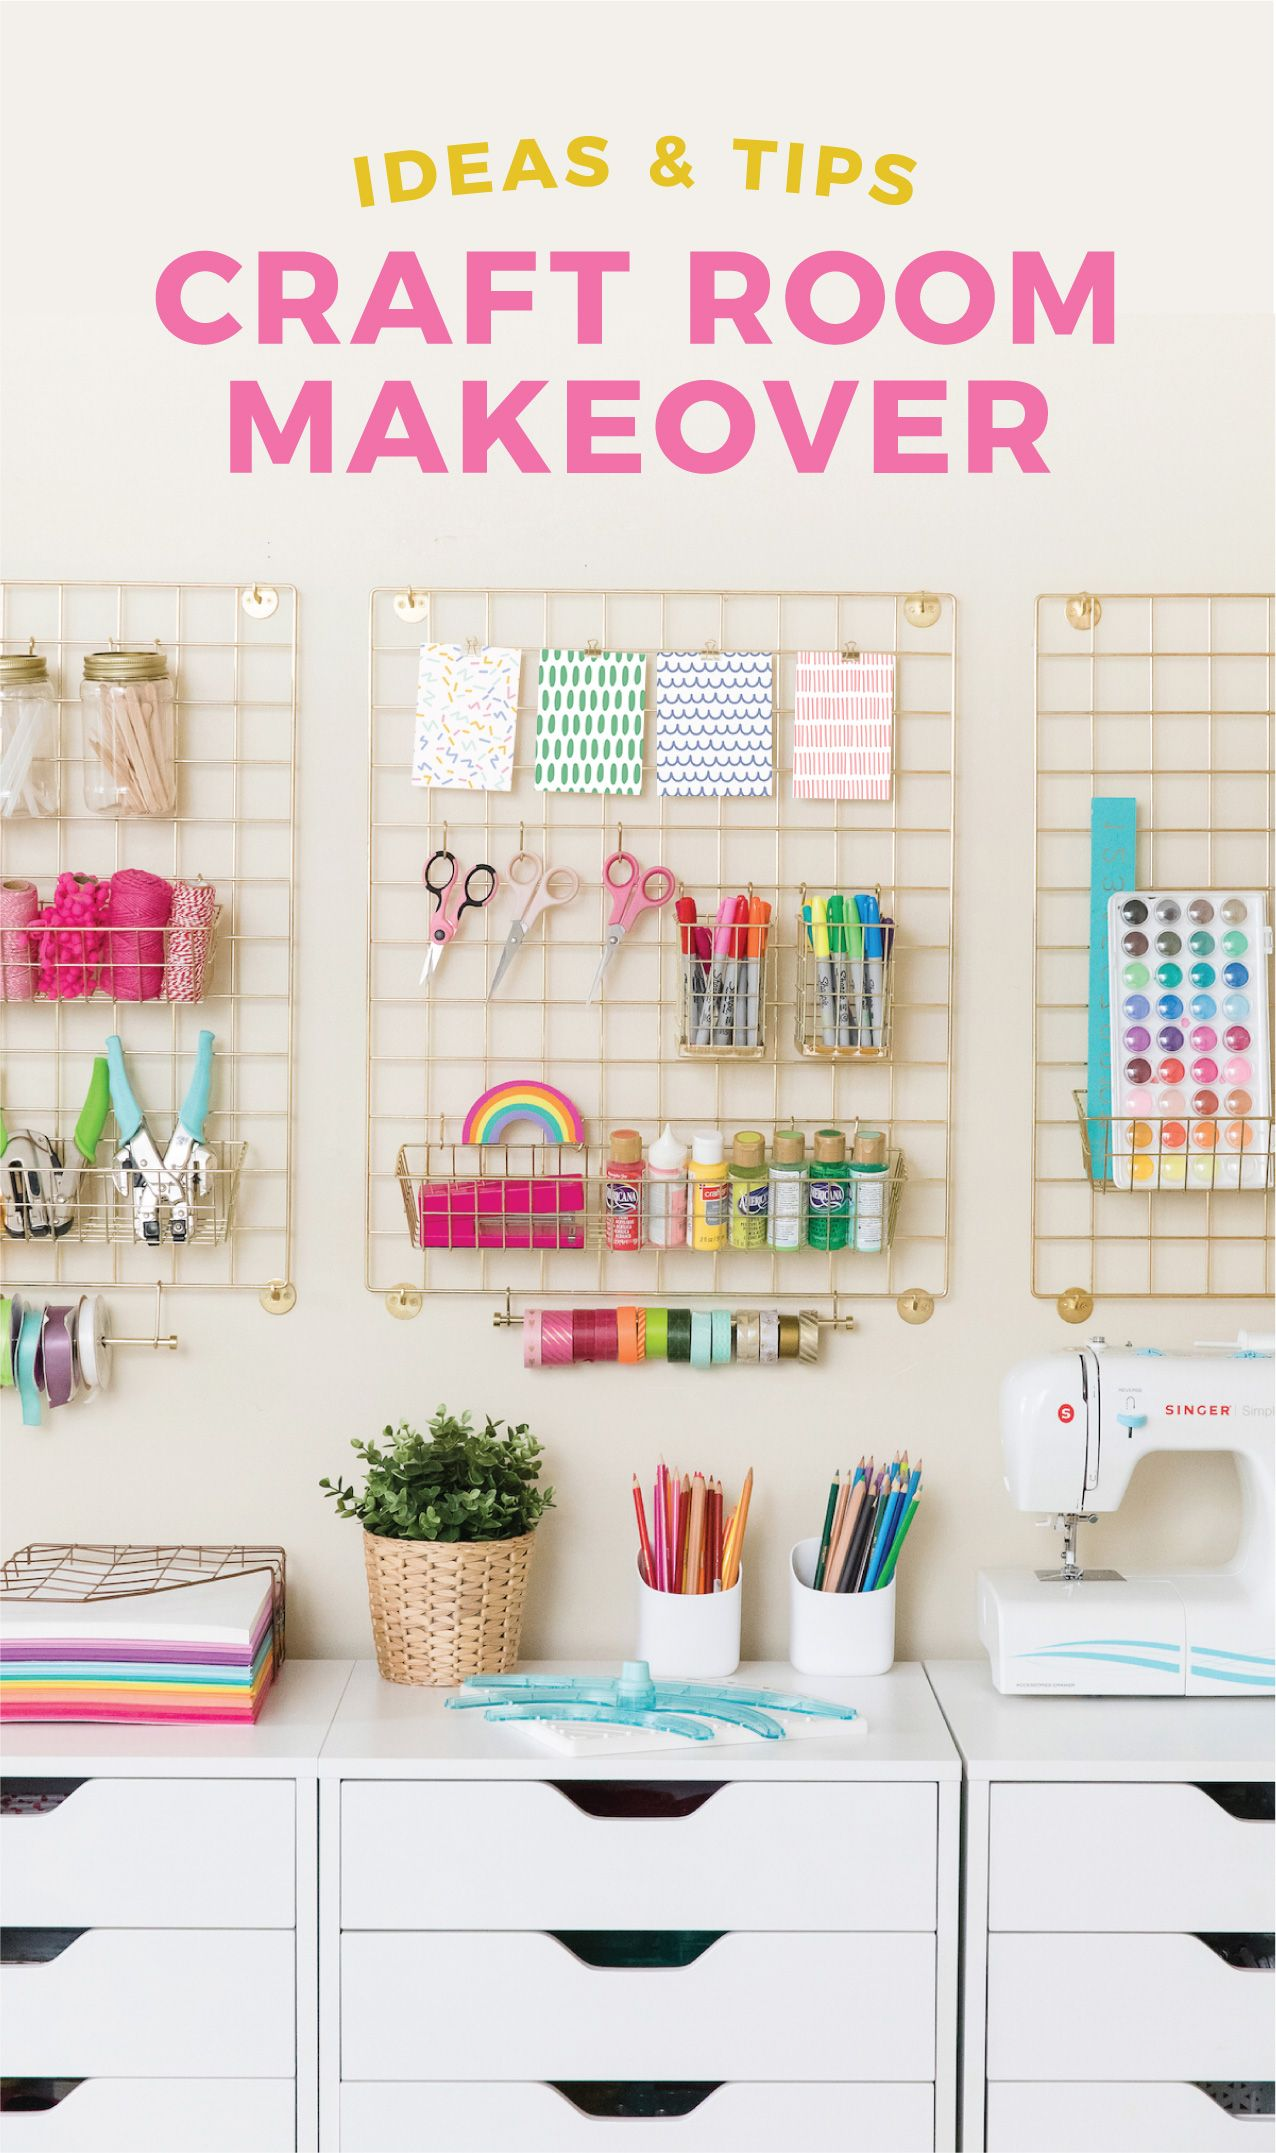 My new craft room reveal is here! Going over craft room storage, organization, and decor ideas to help create an inspiring, crafty space! #craftroommakeovers